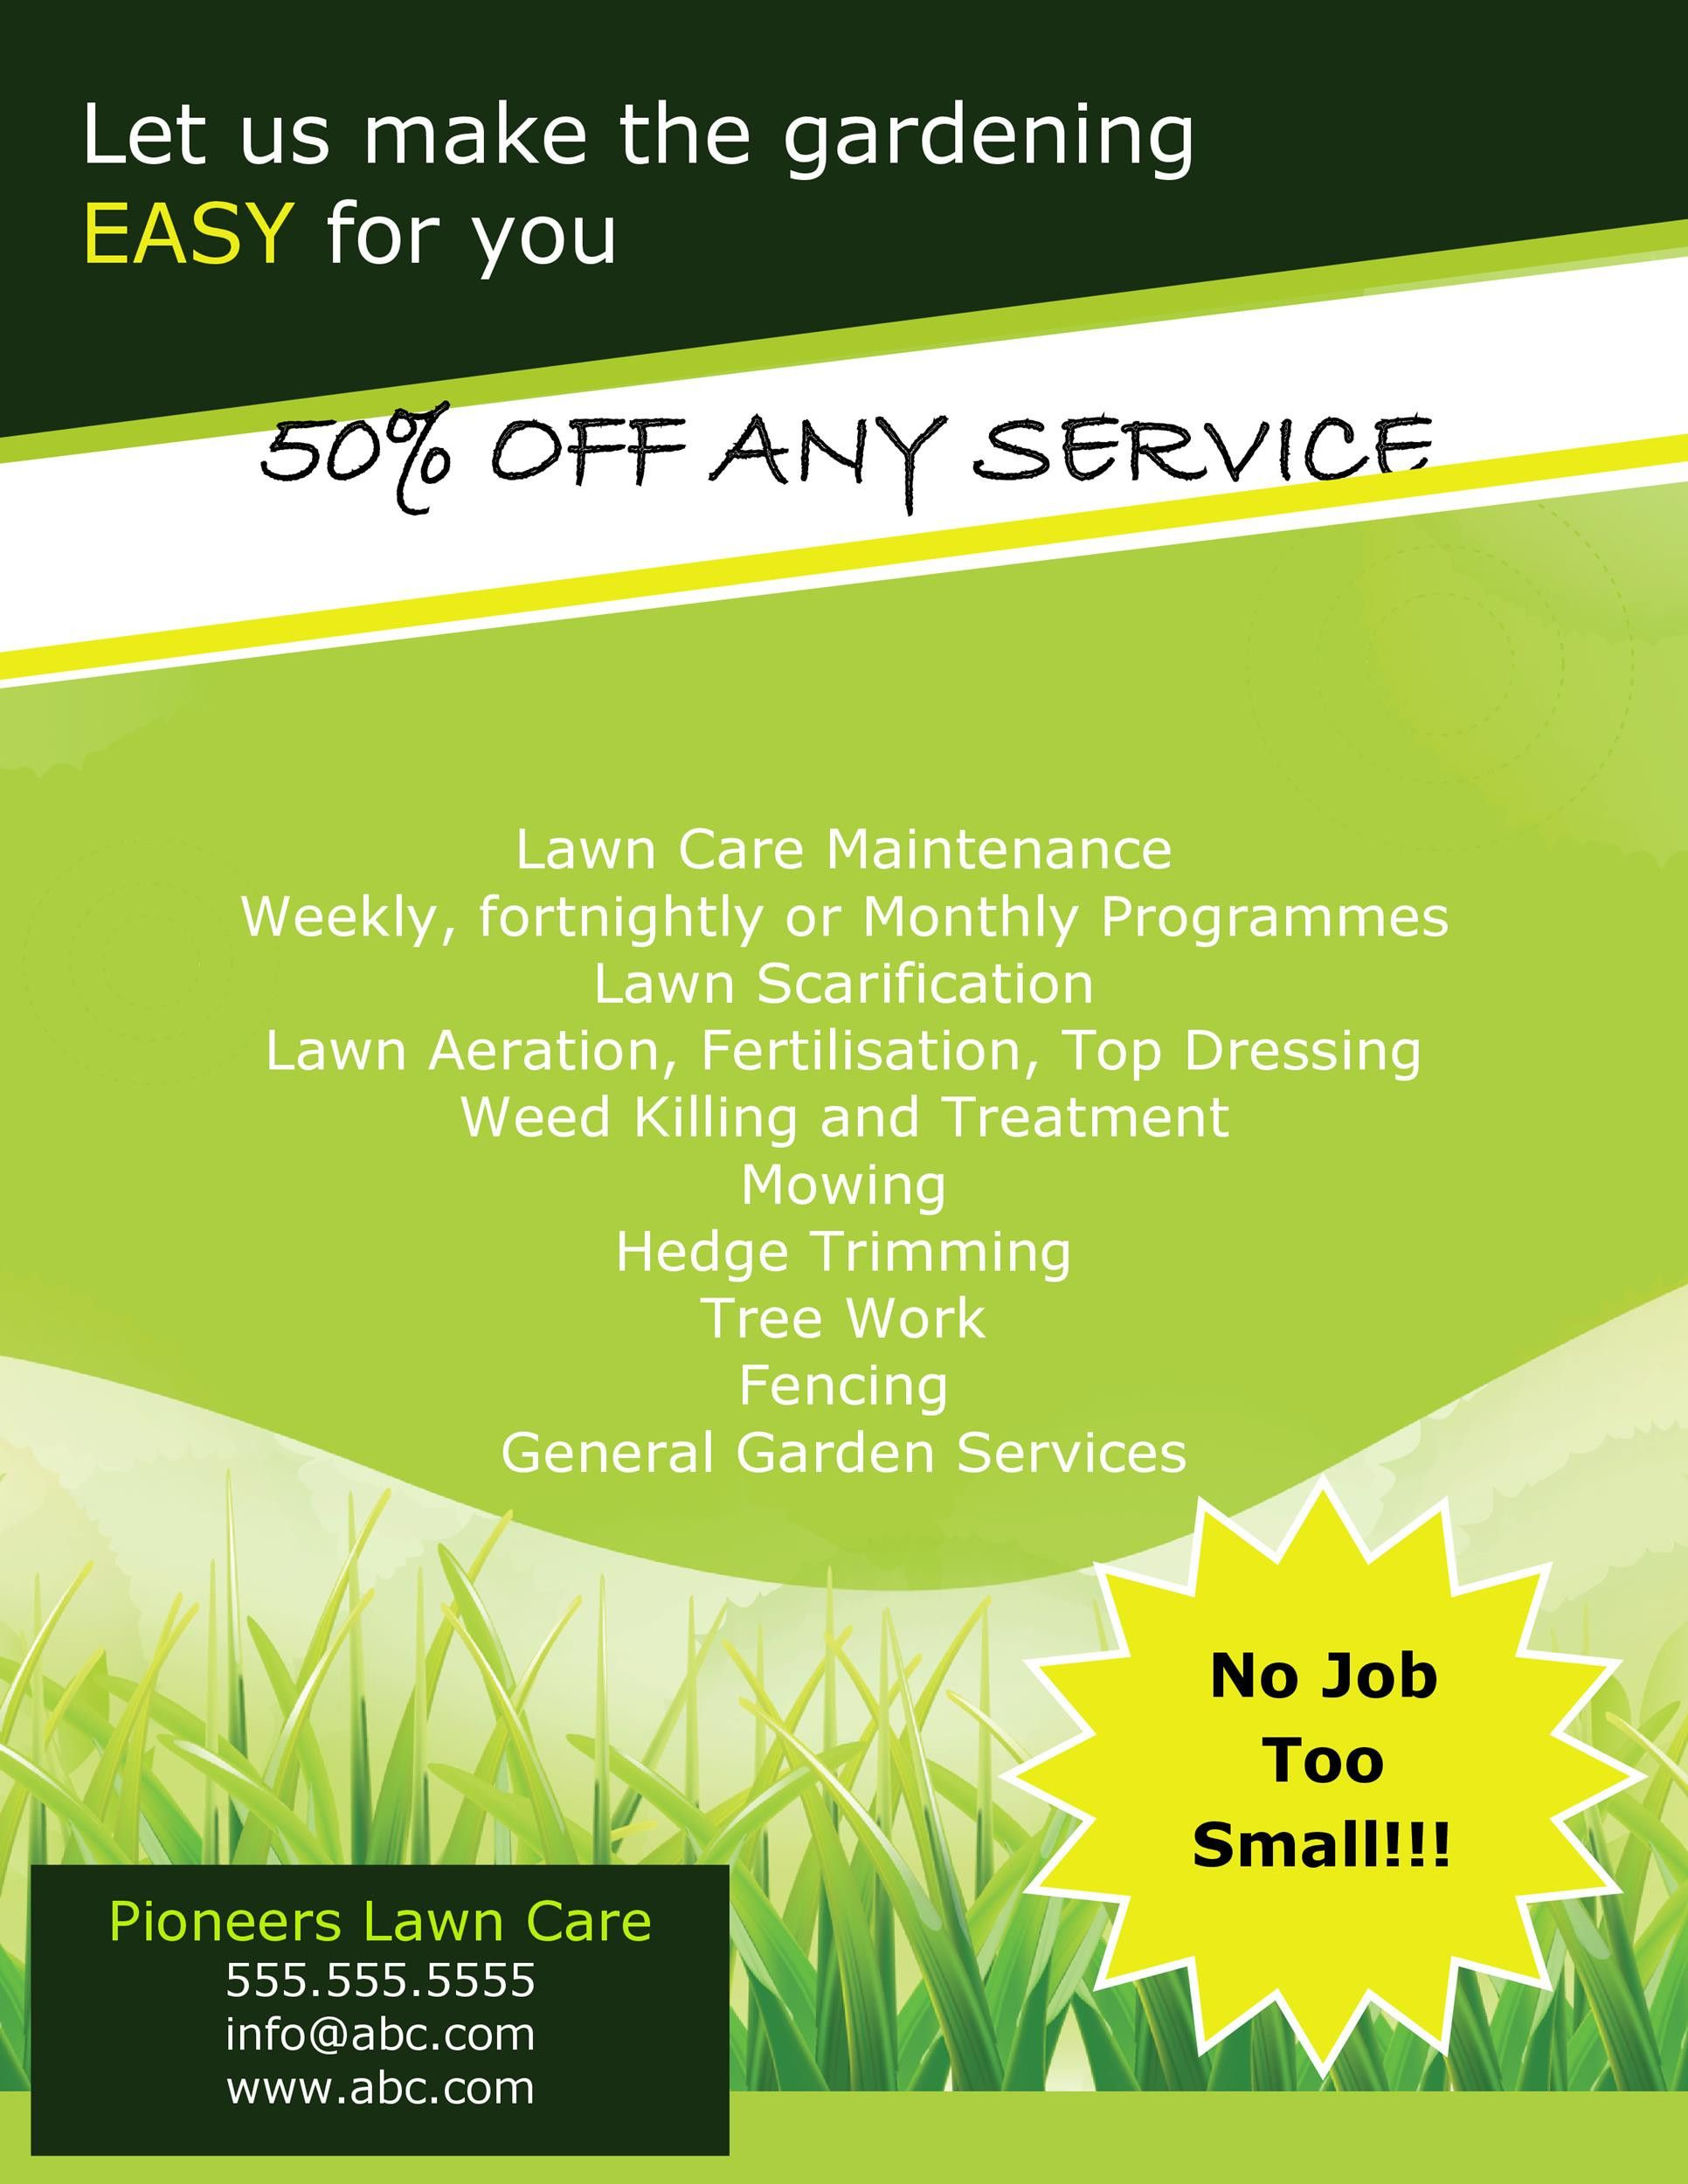 Lawn Care Flyer Template Lawn Care Flyers Lawn Care Lawn